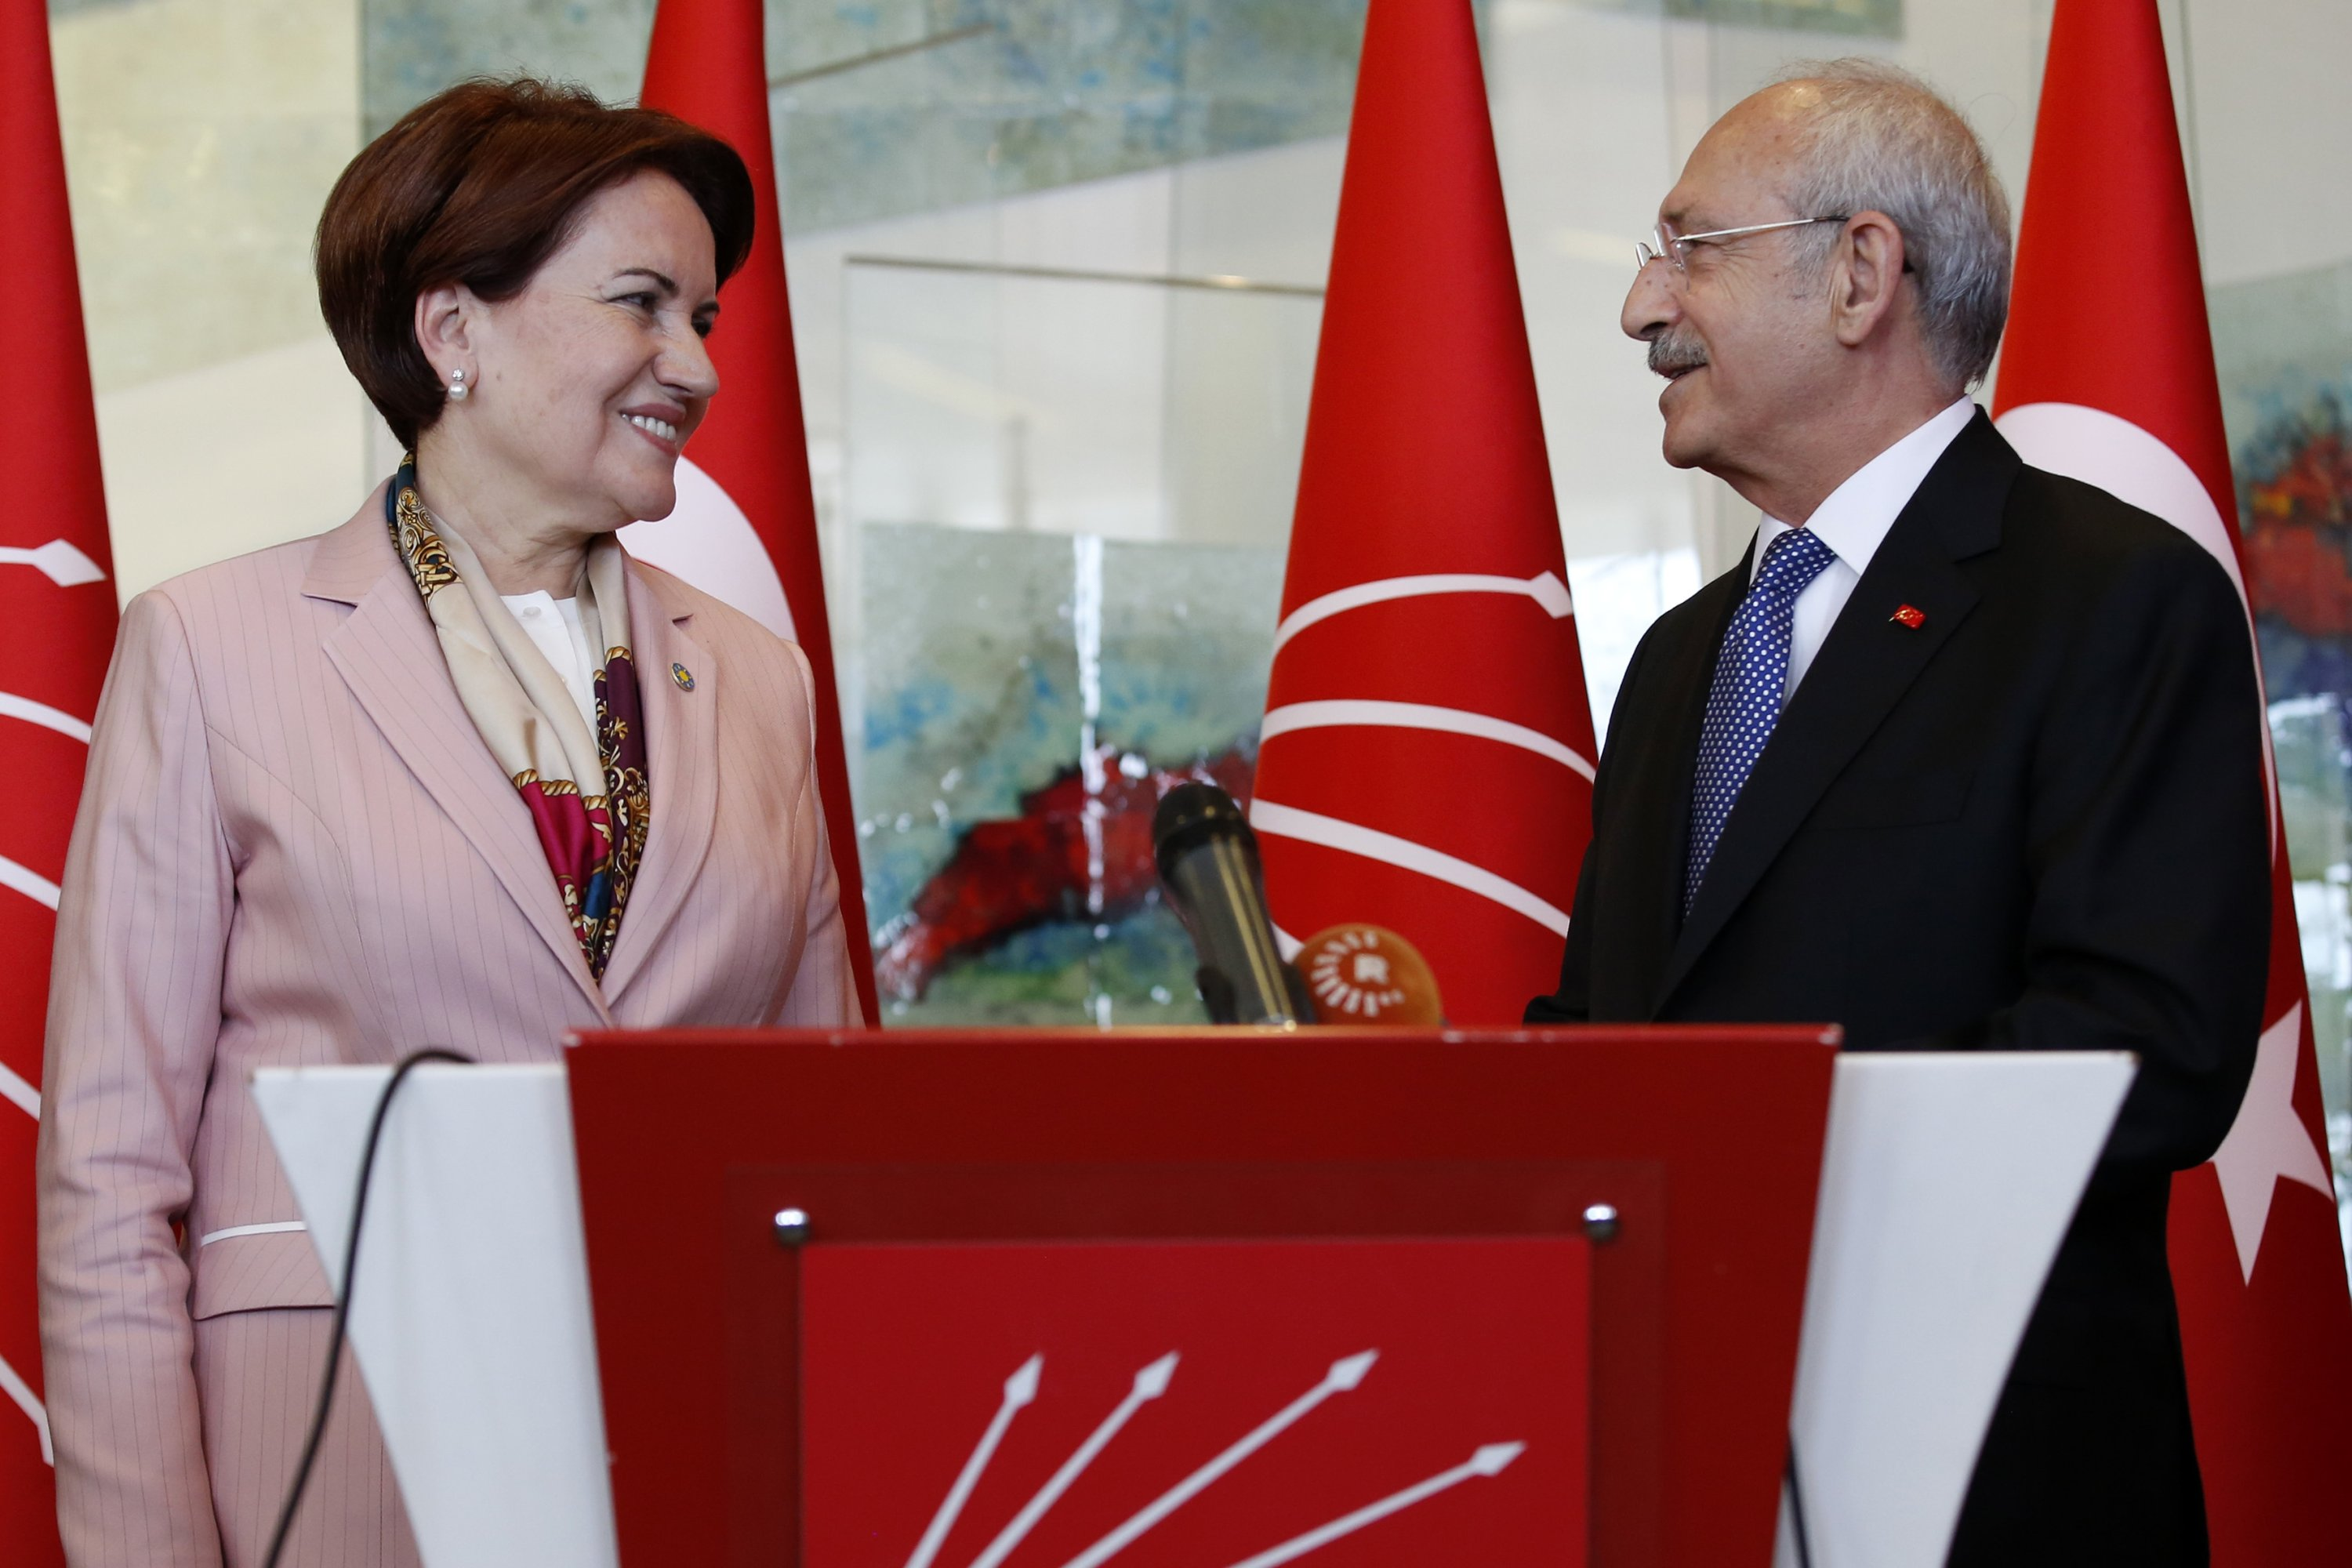 Kemal Kılıçdaroğlu (R), chairperson of the CHP, and Meral Akşener (L), chairperson of the IP, give a joint press conference at the CHP headquarters in Ankara, Turkey, Apr. 15, 2018. (Getty Images Photo)